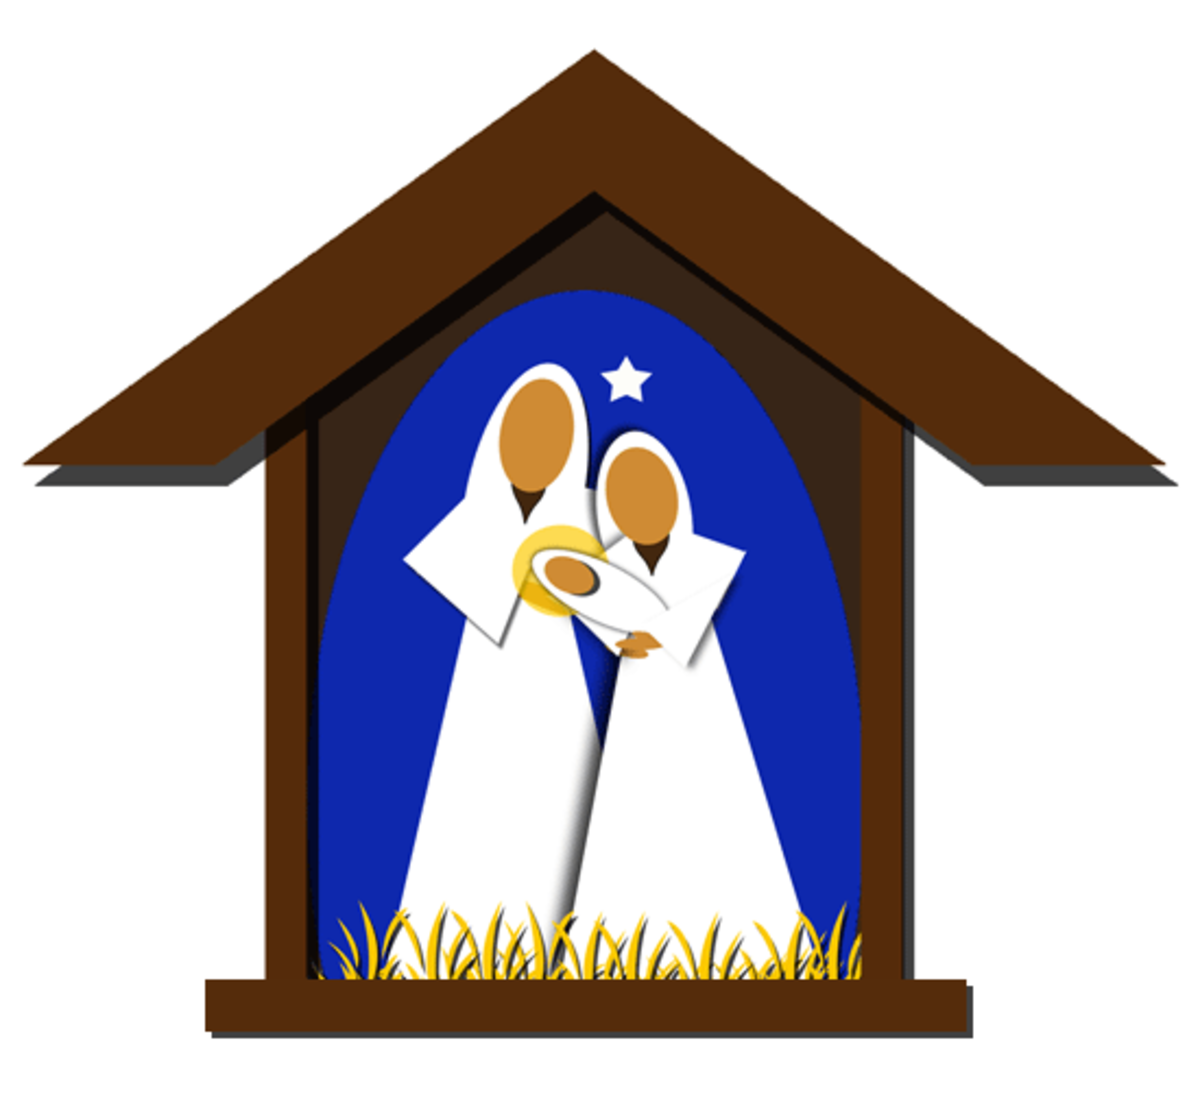 Christmas Nativity Scene Clipart Image